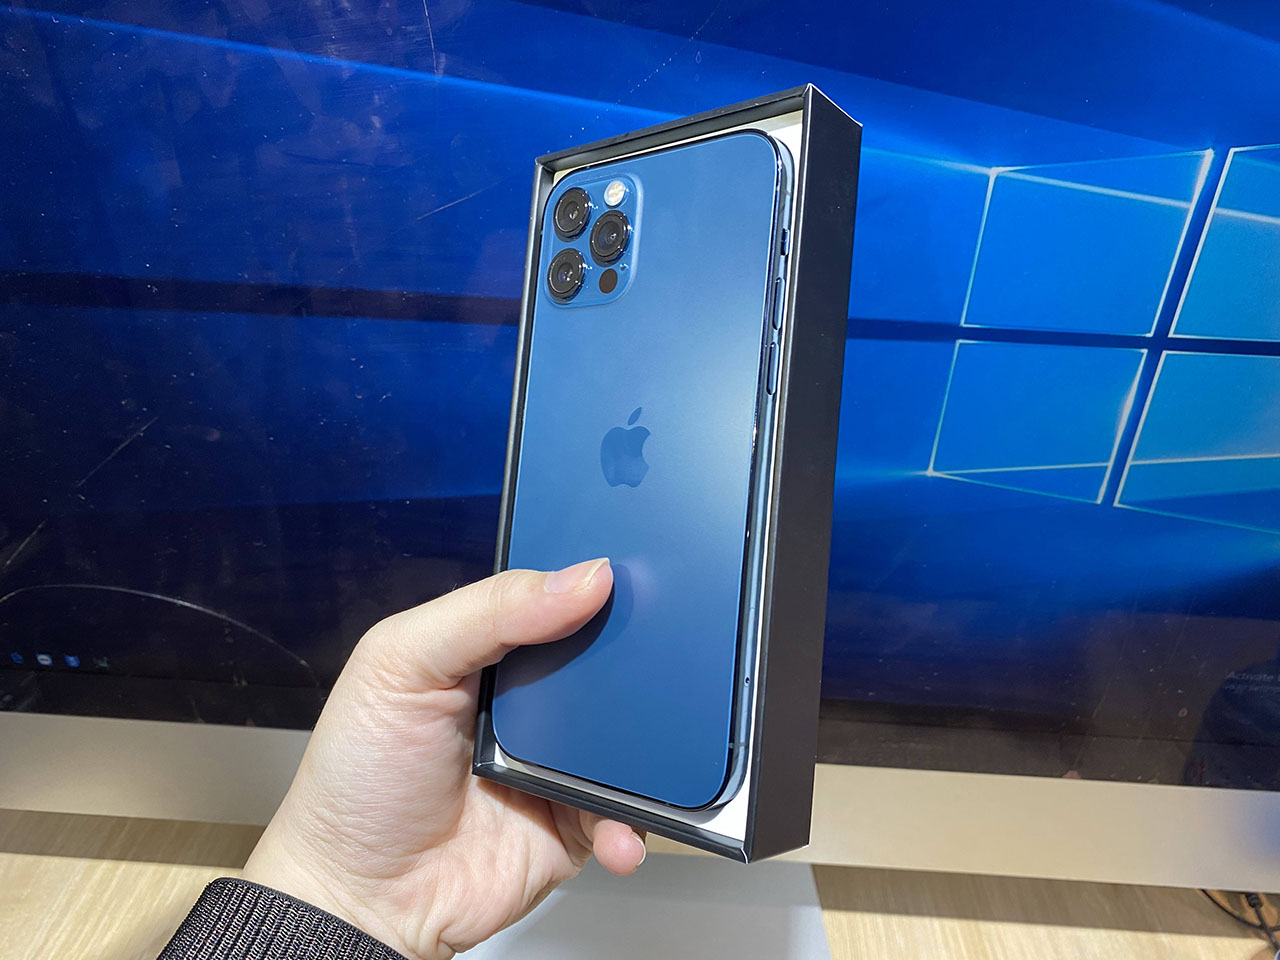 Thiết kế của iPhone 12 Pro